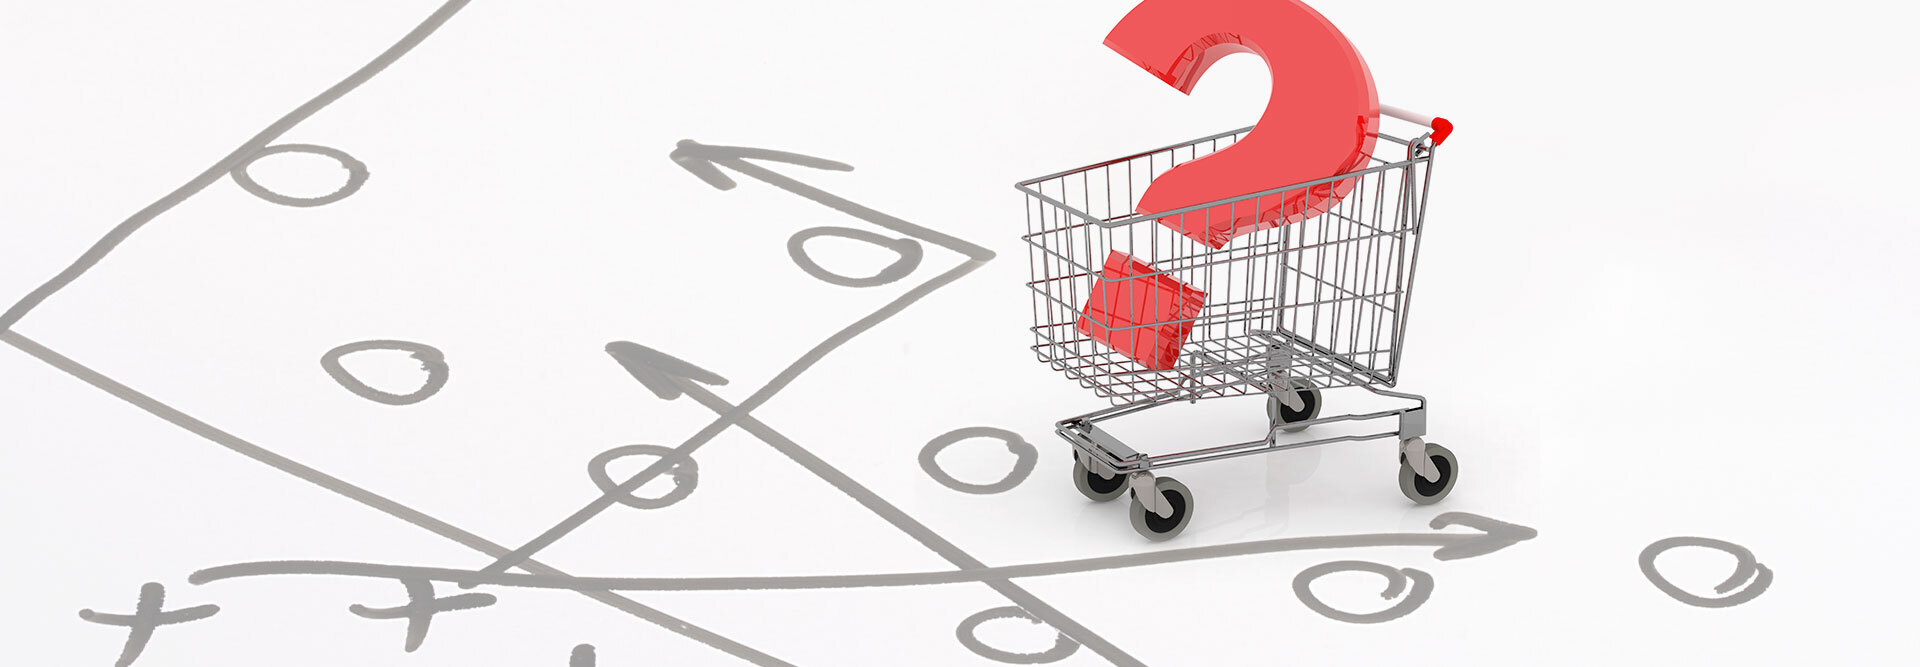 The Ecommerce Ecosystem: The Post Pandemic Playbook